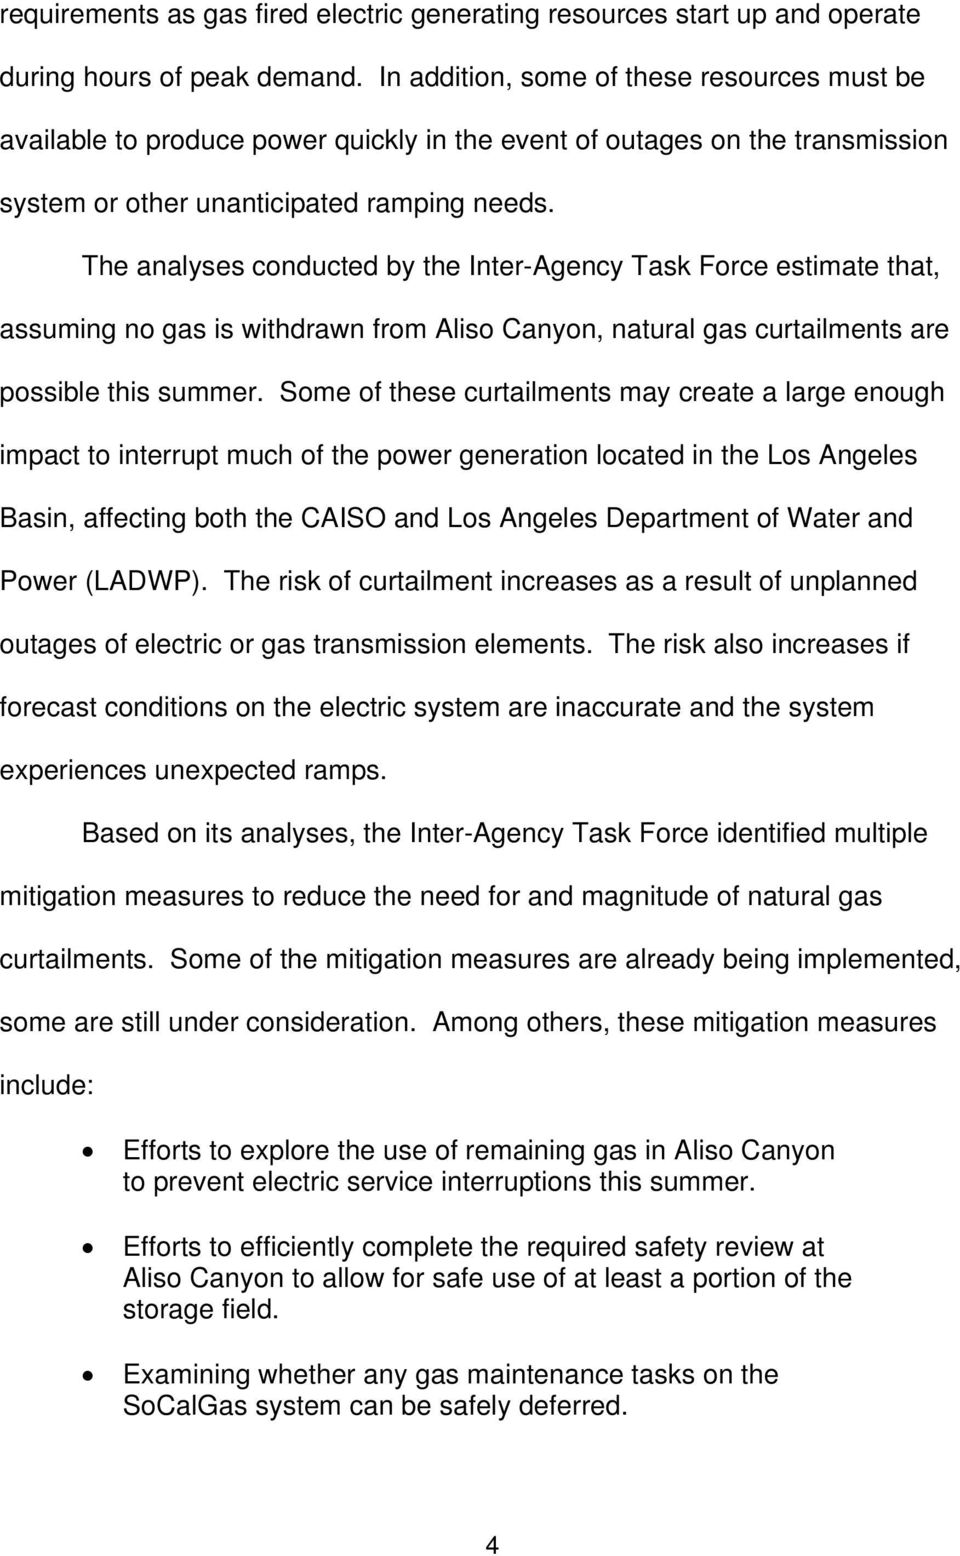 The analyses conducted by the Inter-Agency Task Force estimate that, assuming no gas is withdrawn from Aliso Canyon, natural gas curtailments are possible this summer.